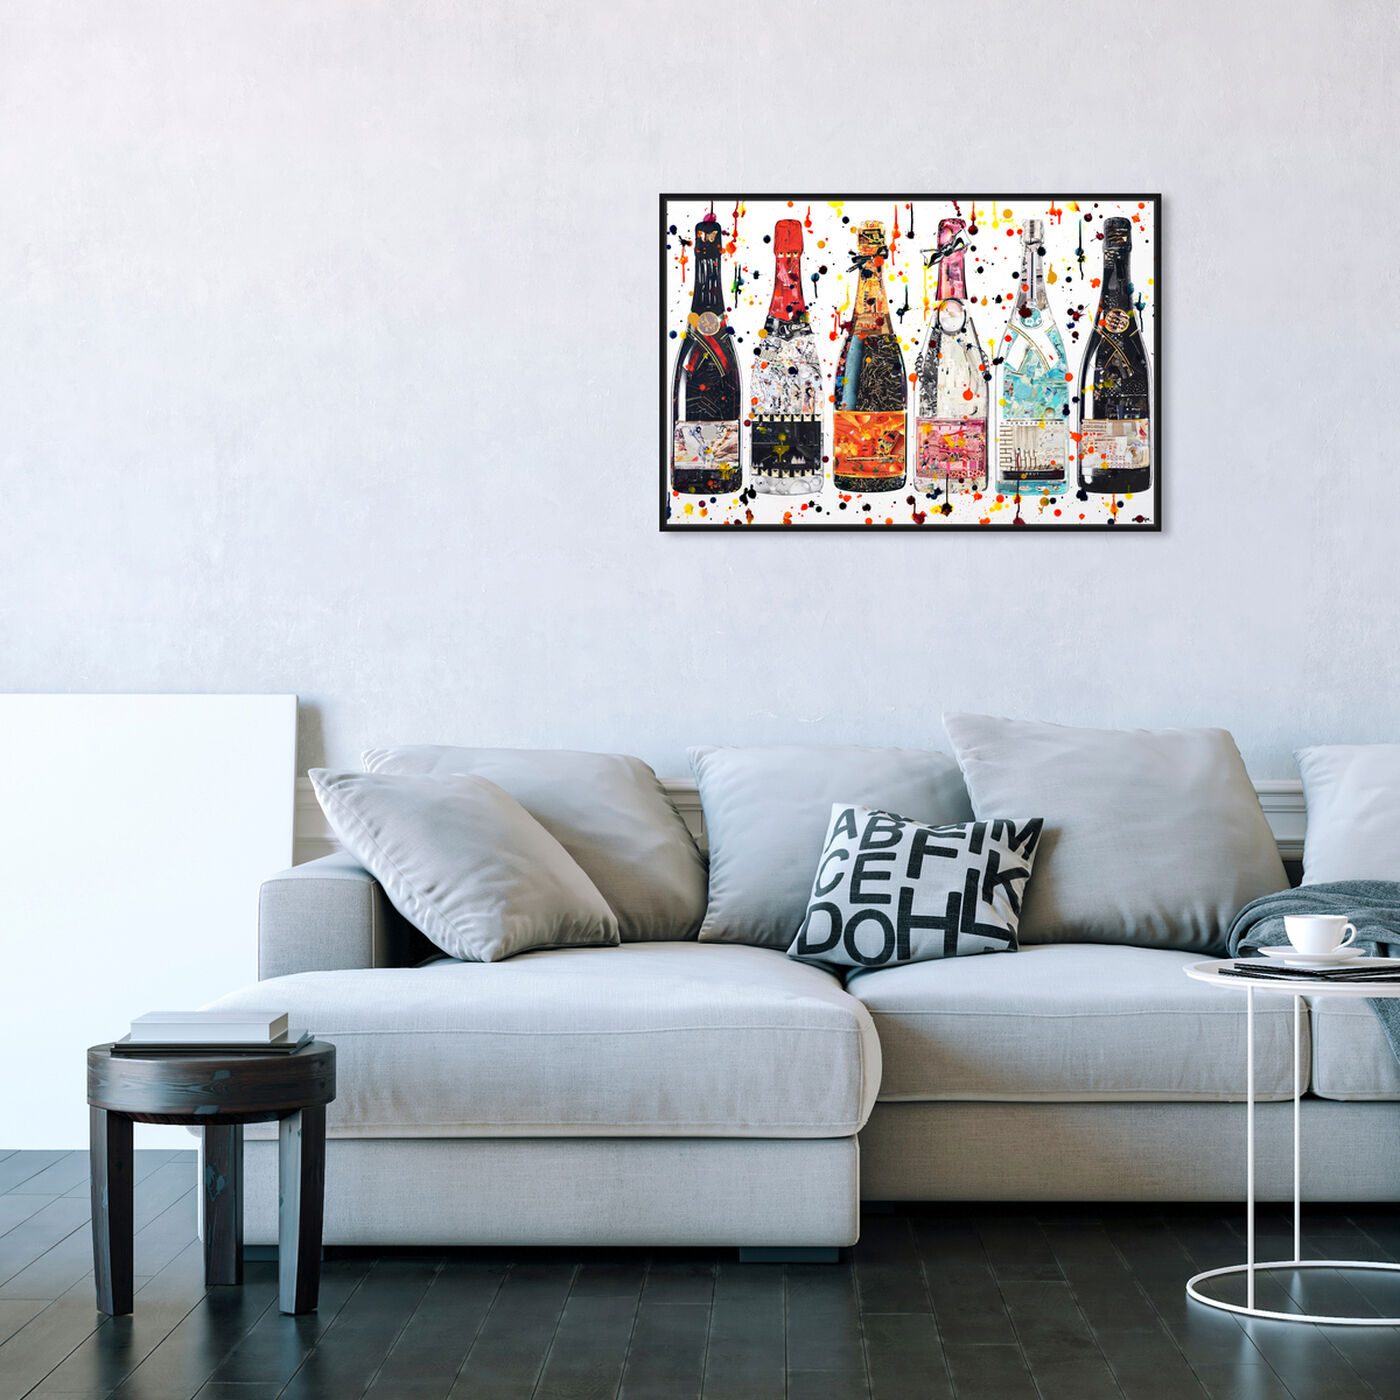 Hanging view of Katy Hirschfeld - Fancy Spirits featuring fashion and glam and fashion lifestyle art.